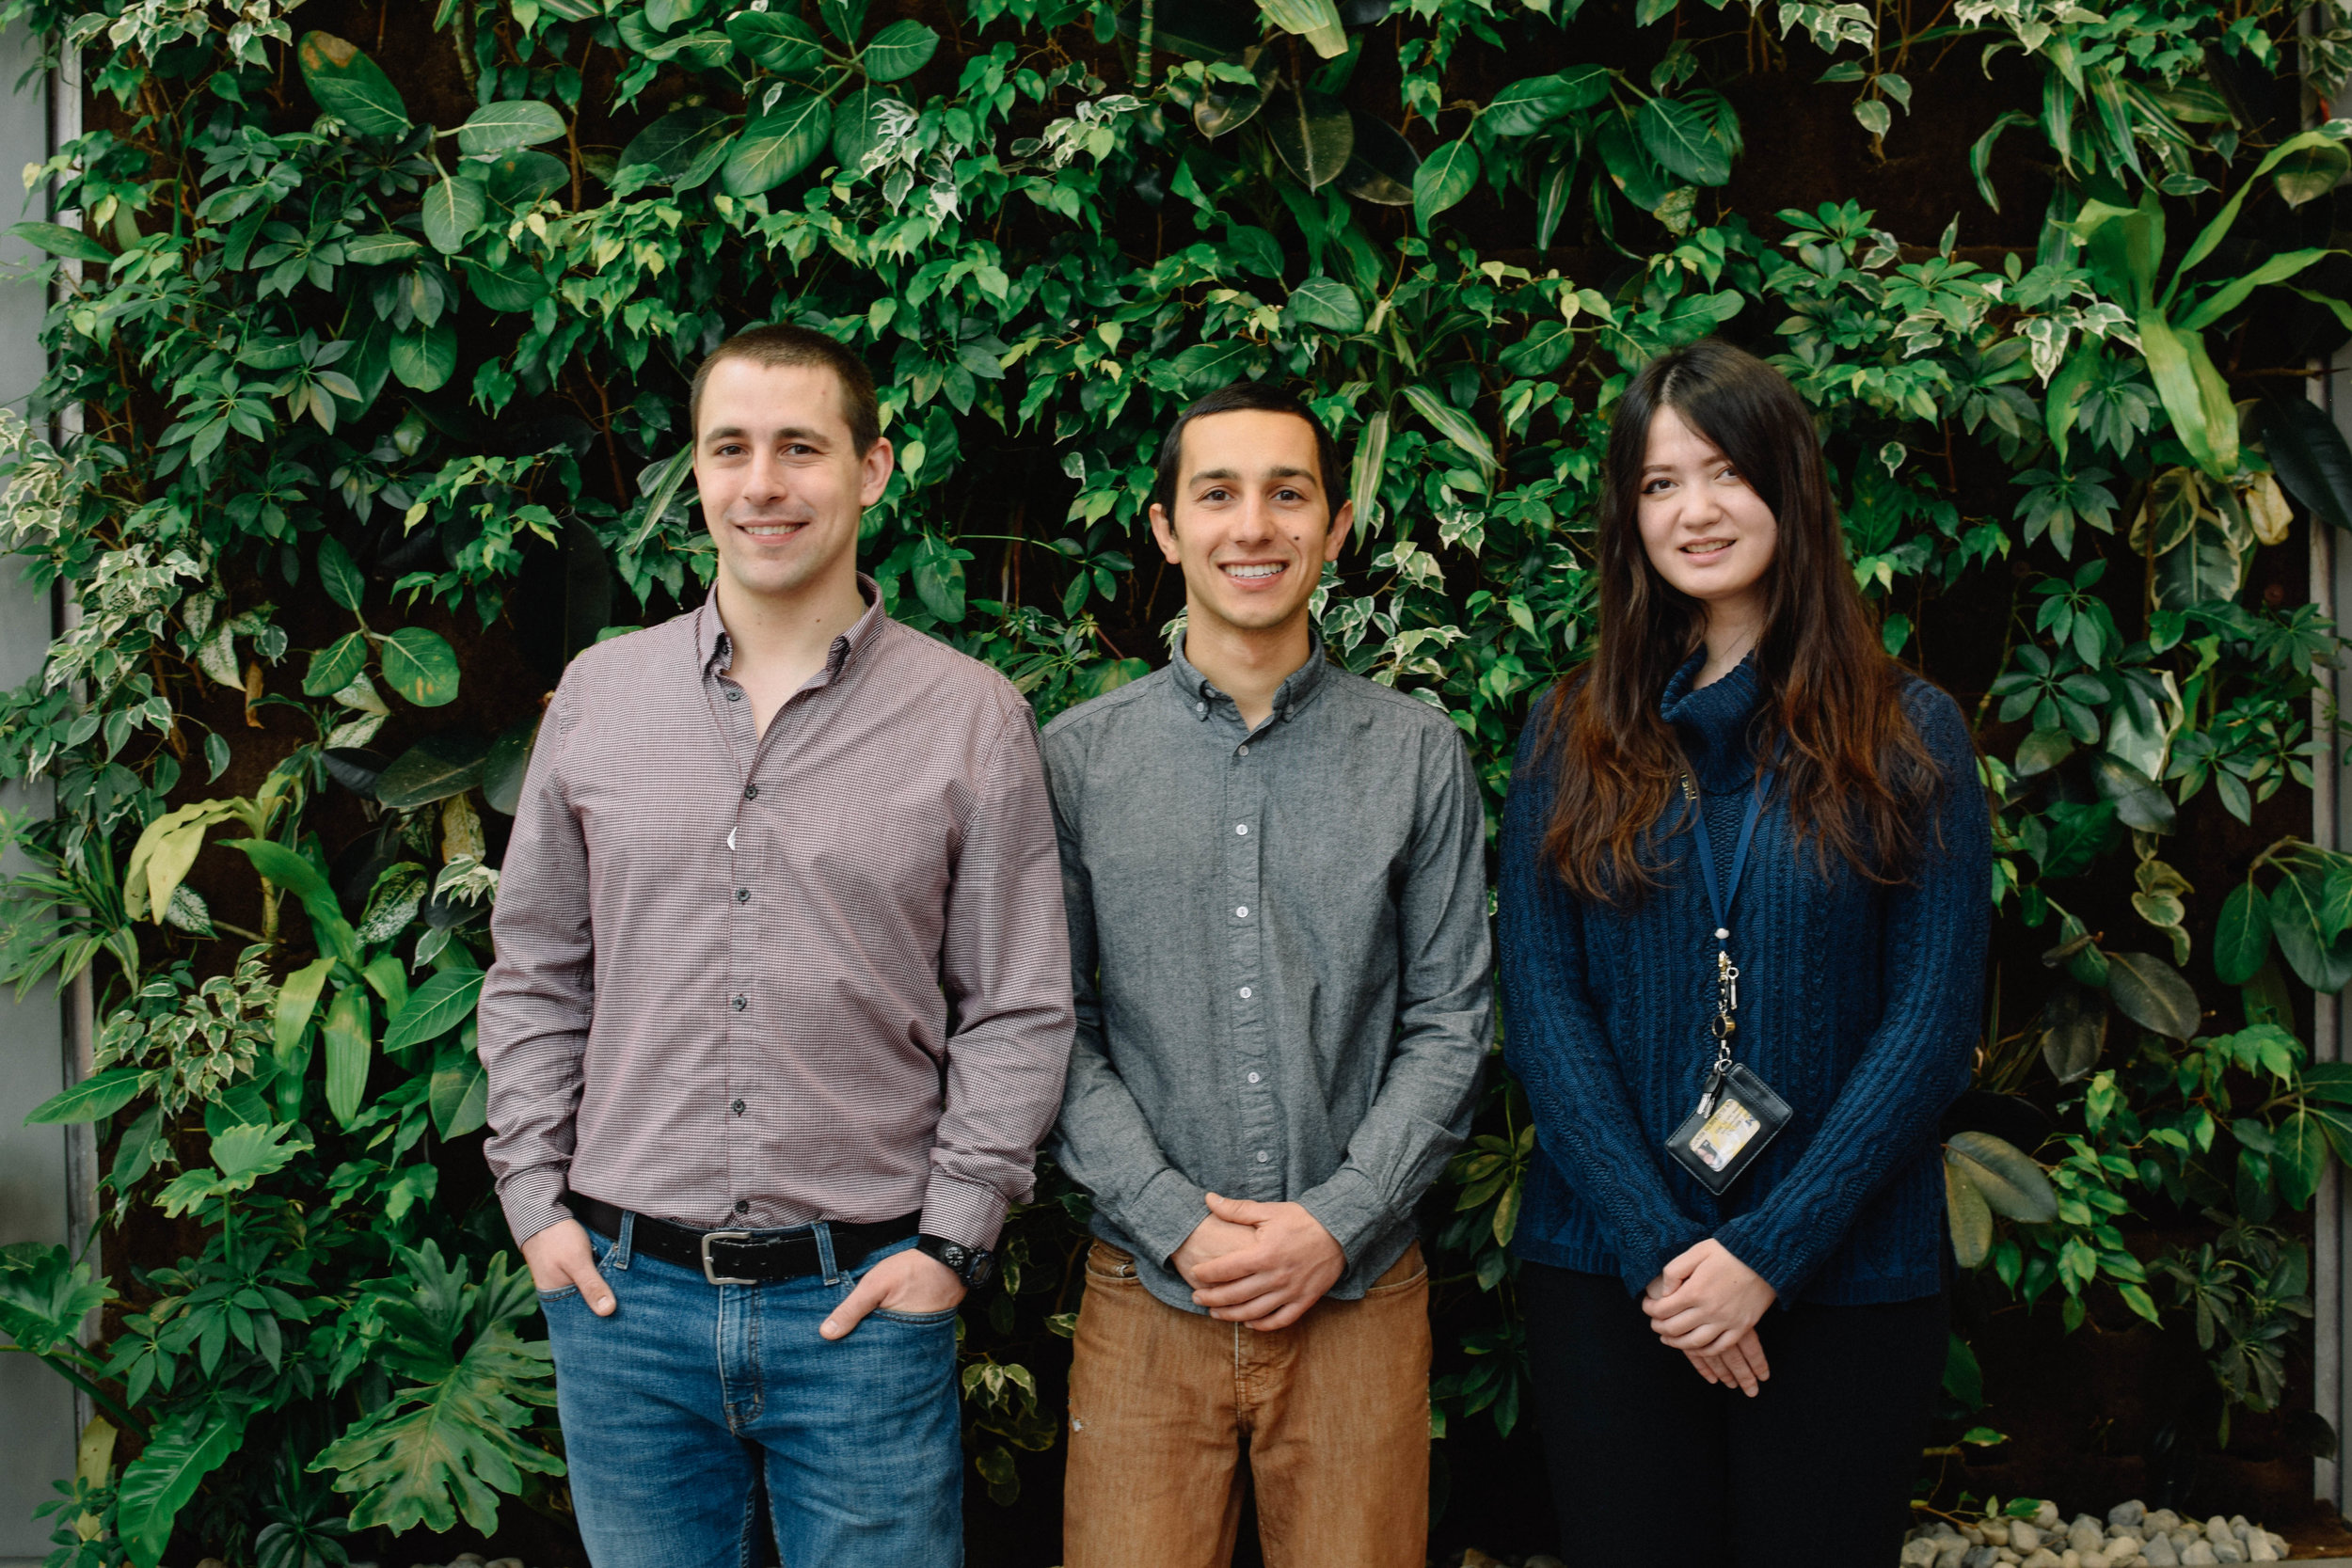 Abaca Games - A video game to promote sustainable behaviors and environmental protectionANDREW LIPIAN, AMBER RENTON, CHRIS KAROUNOS, ZACH VAN STANLEY (NOT PICTURED)